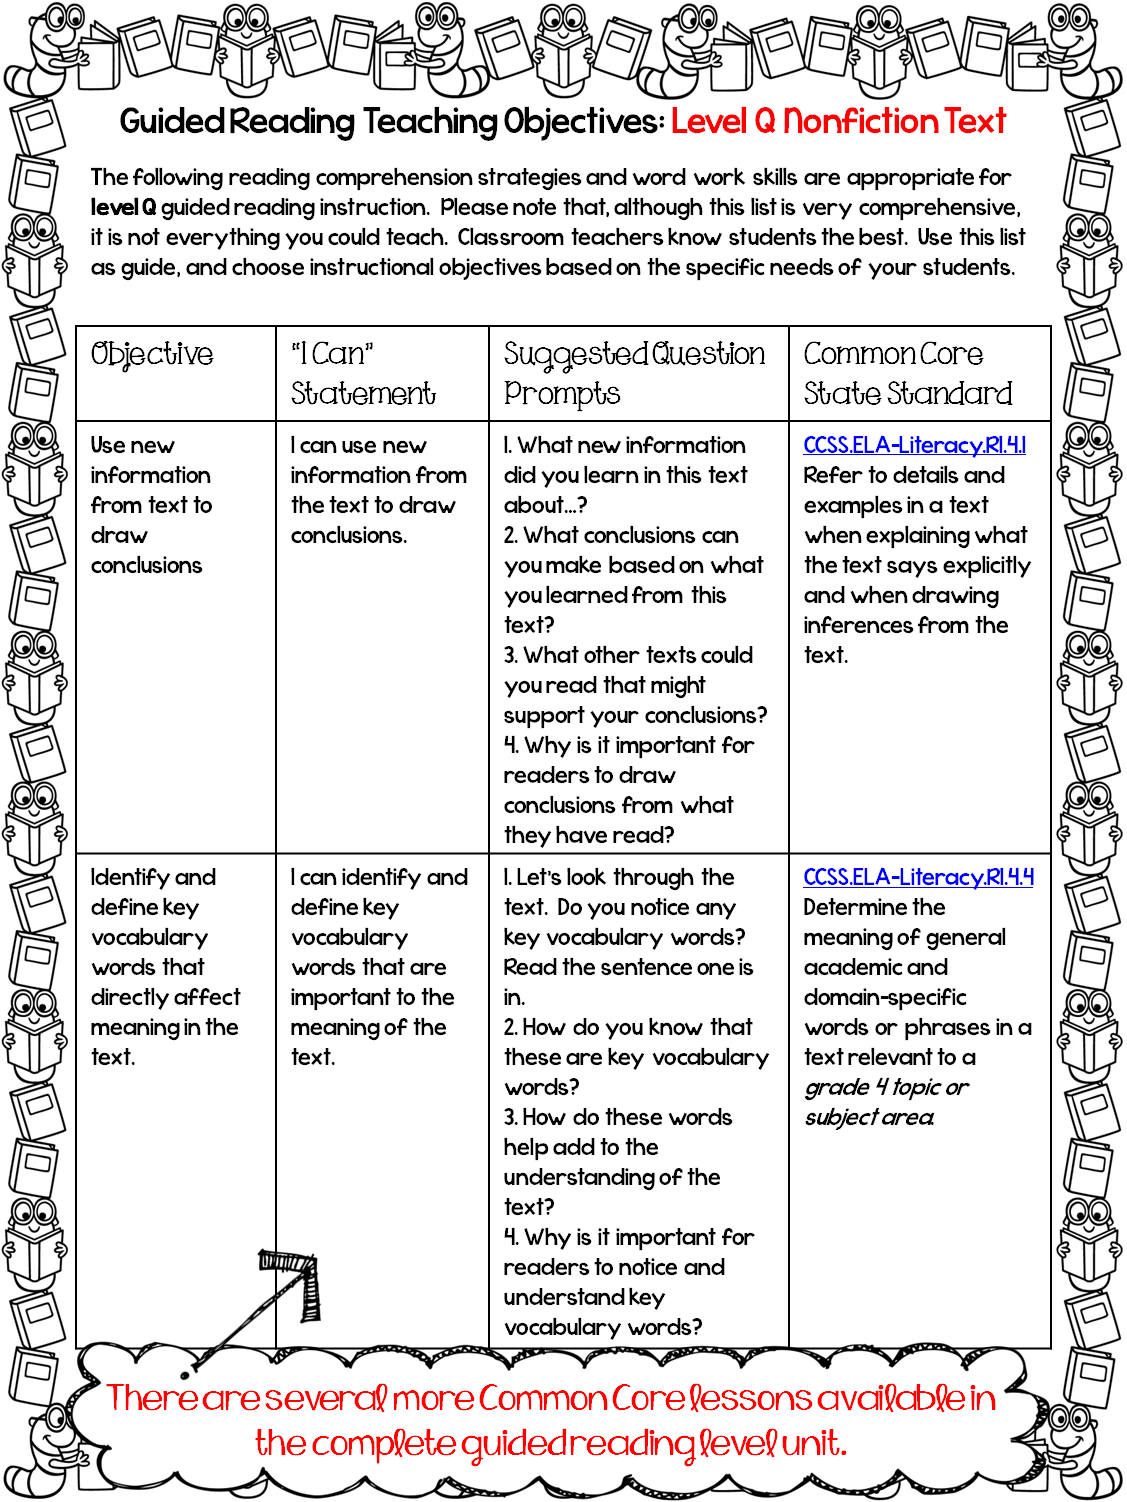 http://www.teacherspayteachers.com/Product/FreebieGuided-Reading-Lessons-and-Printable-Assessments-Grade-4-1127596